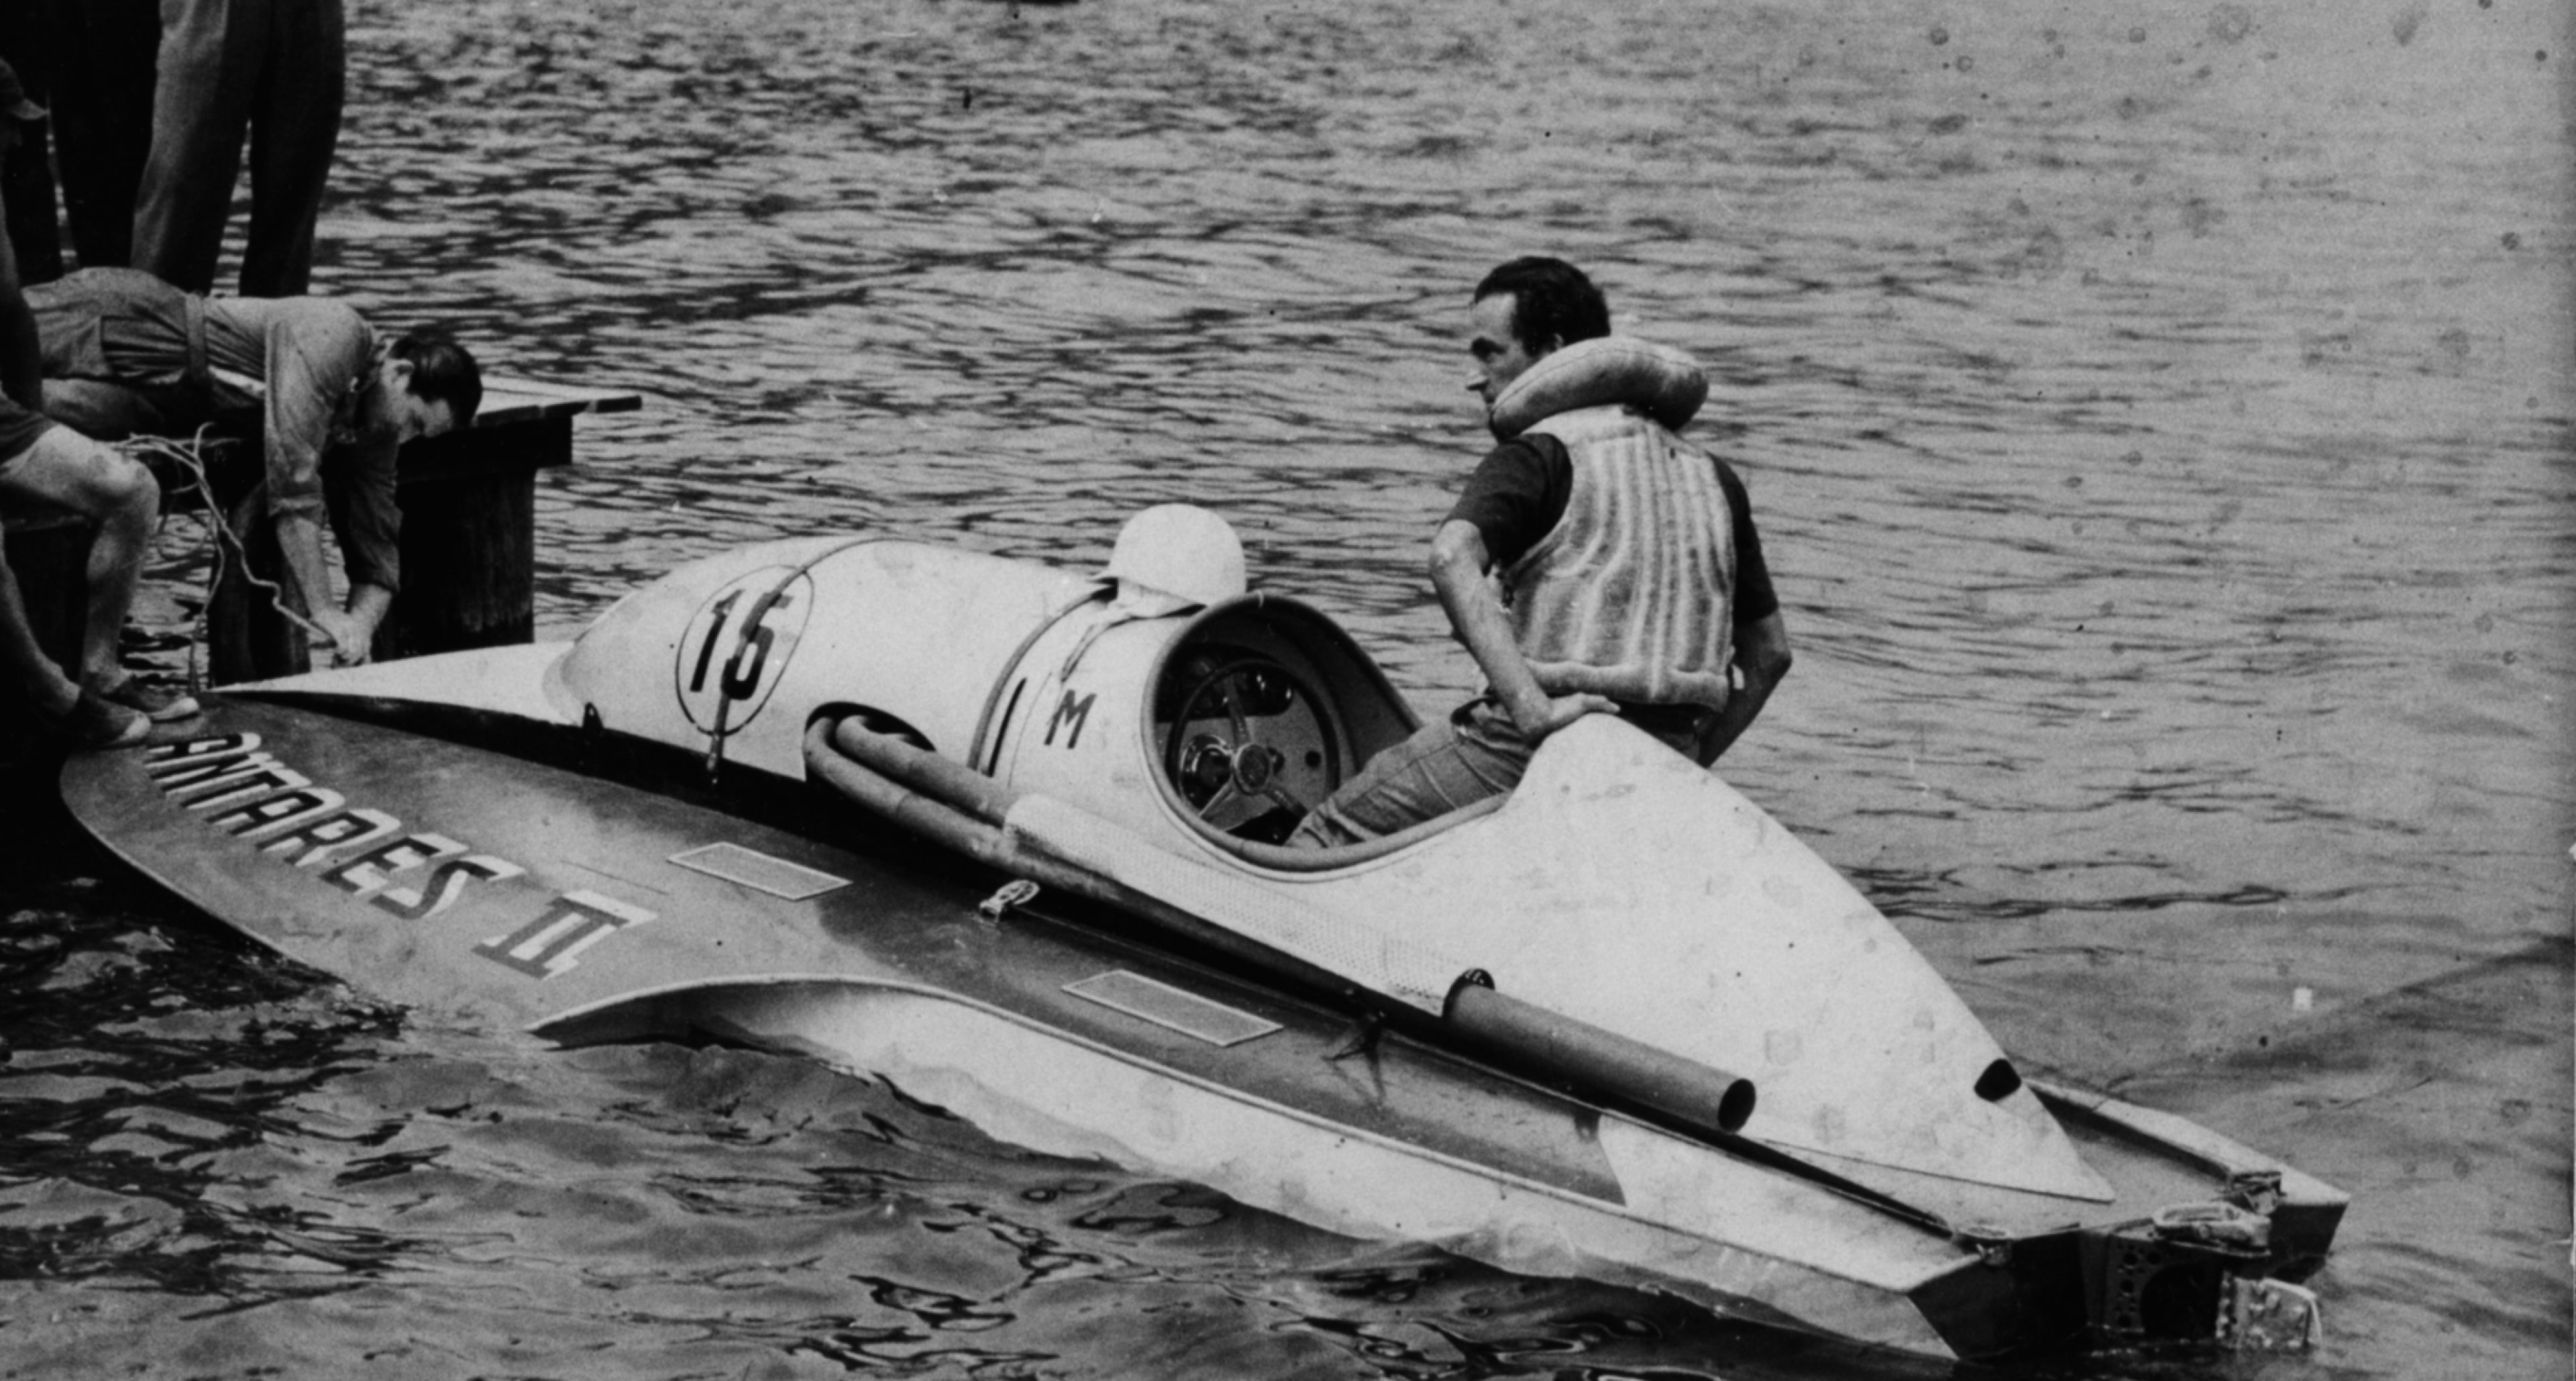 Ready  for take off in the Ferrari powered Hydroplane